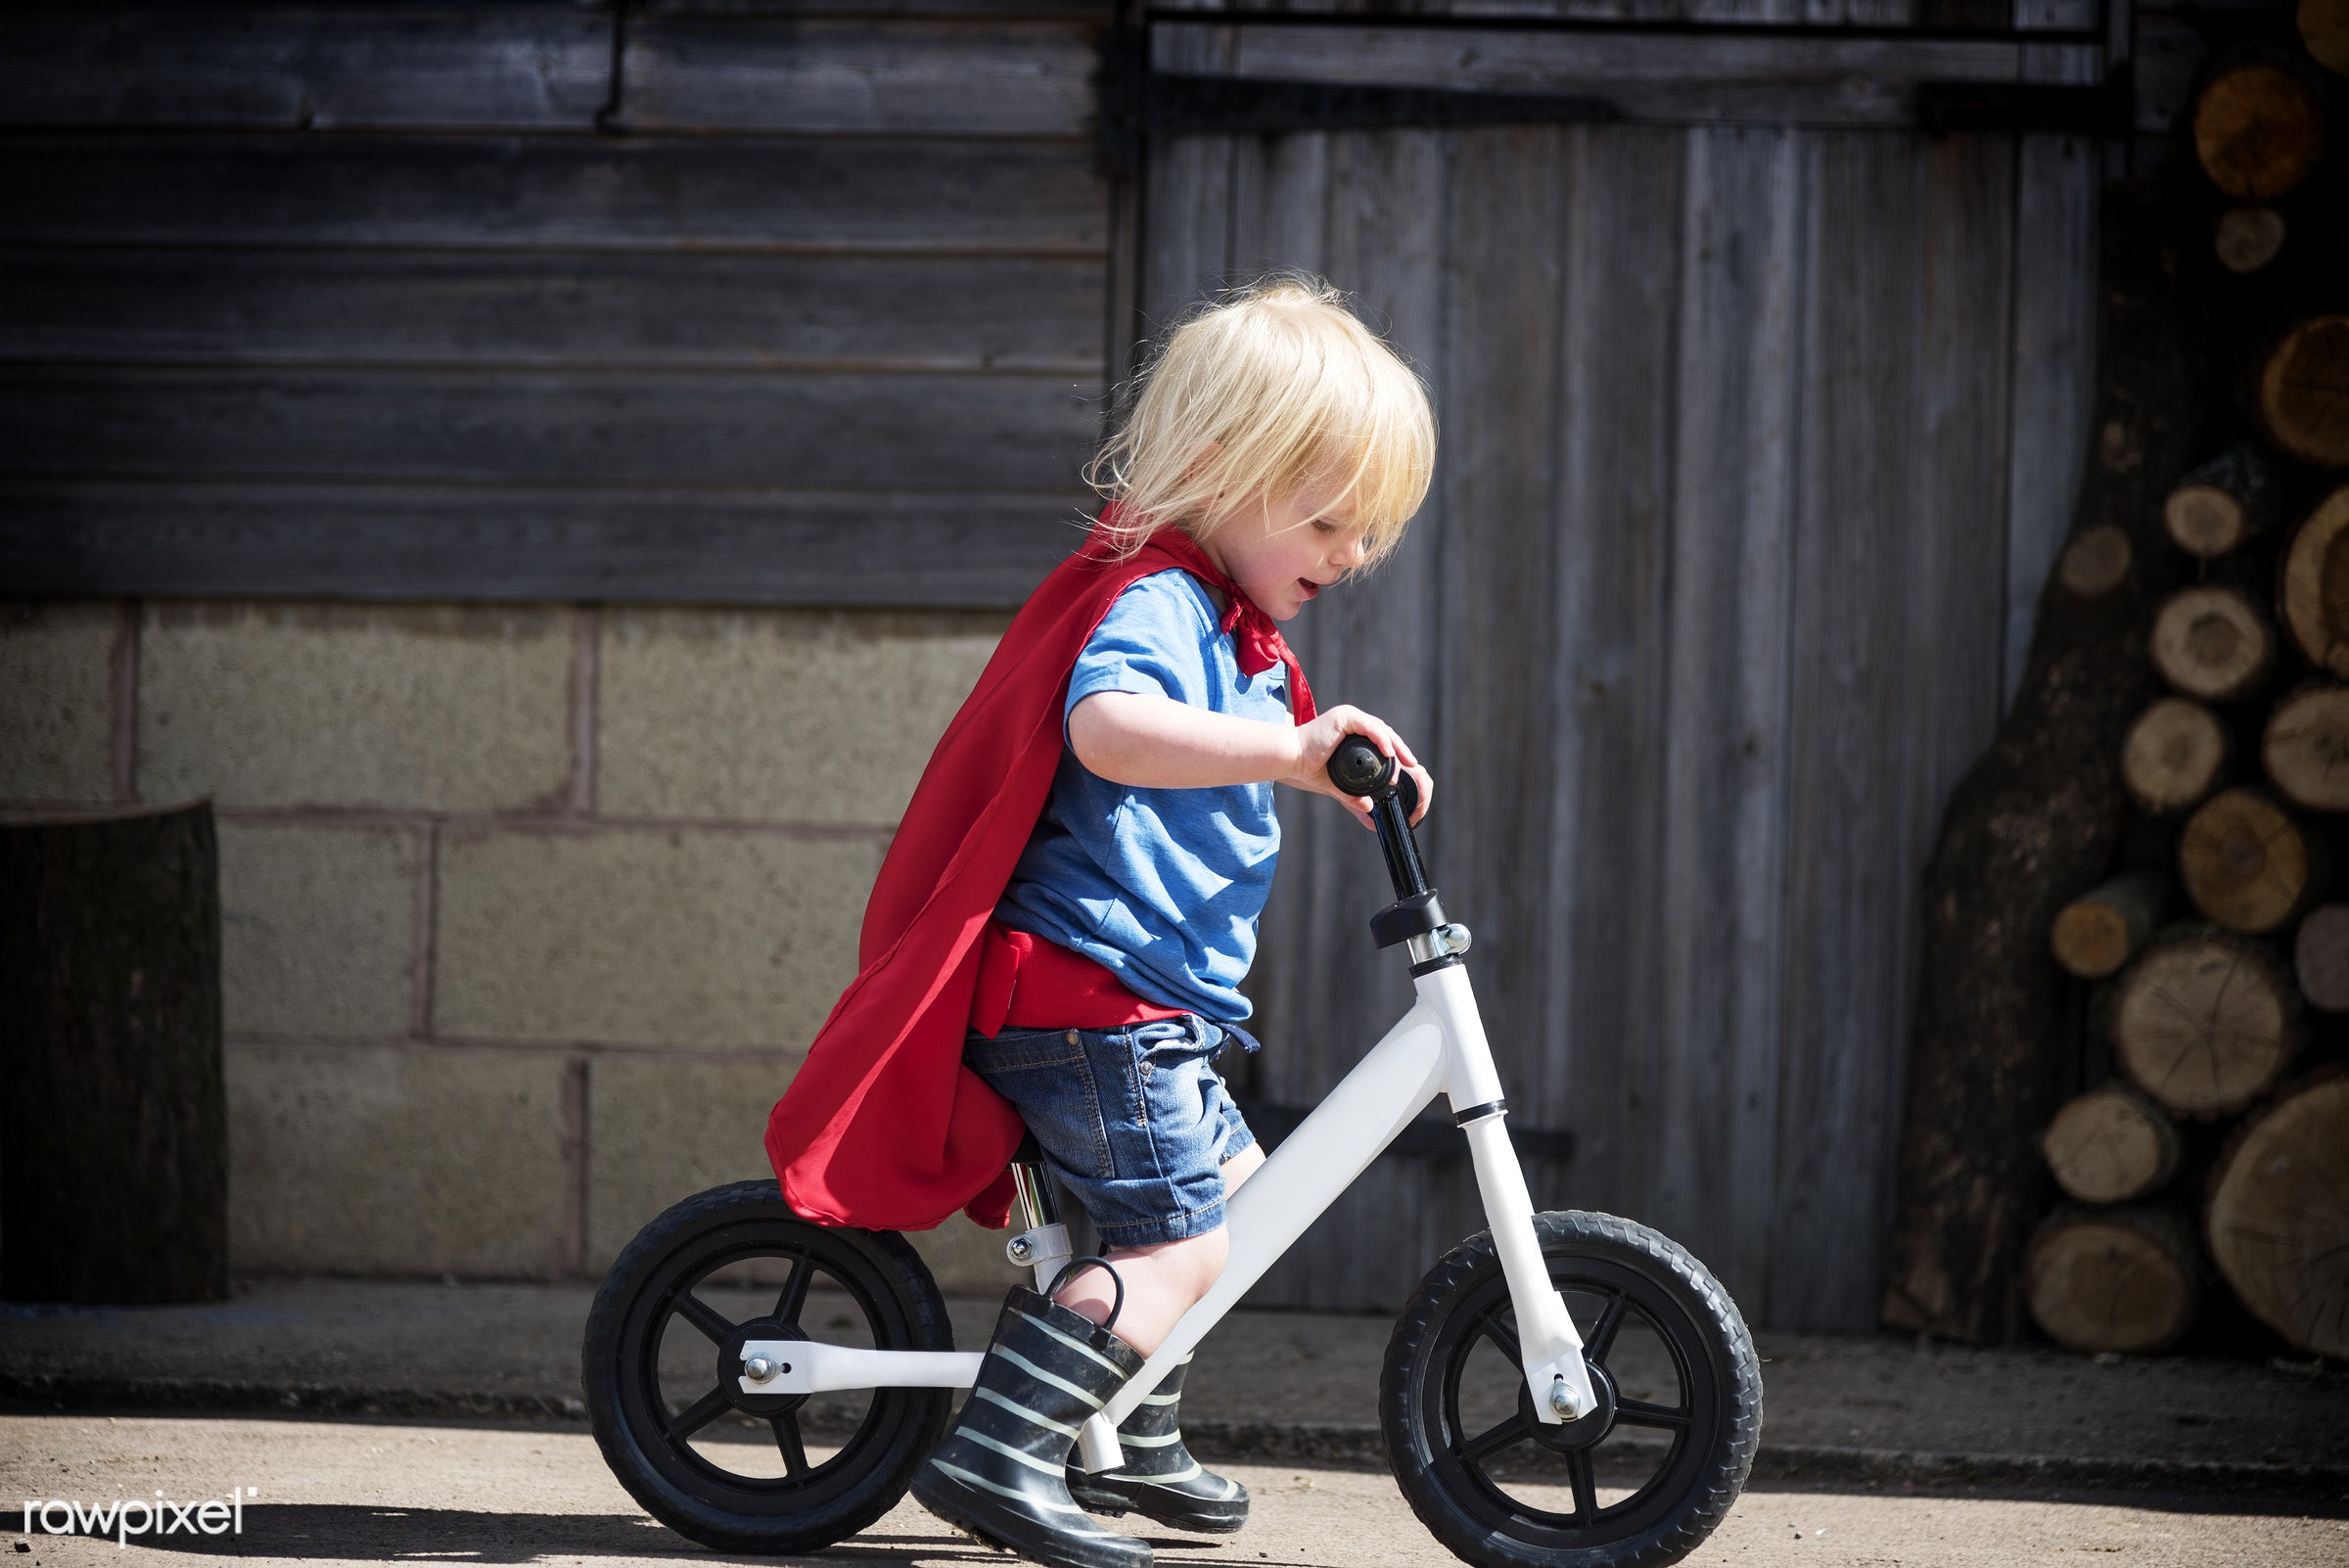 Caucasian children superhero and play shoot  - active, activity, adorable, aspirations, bicycle, bike, biking, boy, brave,...